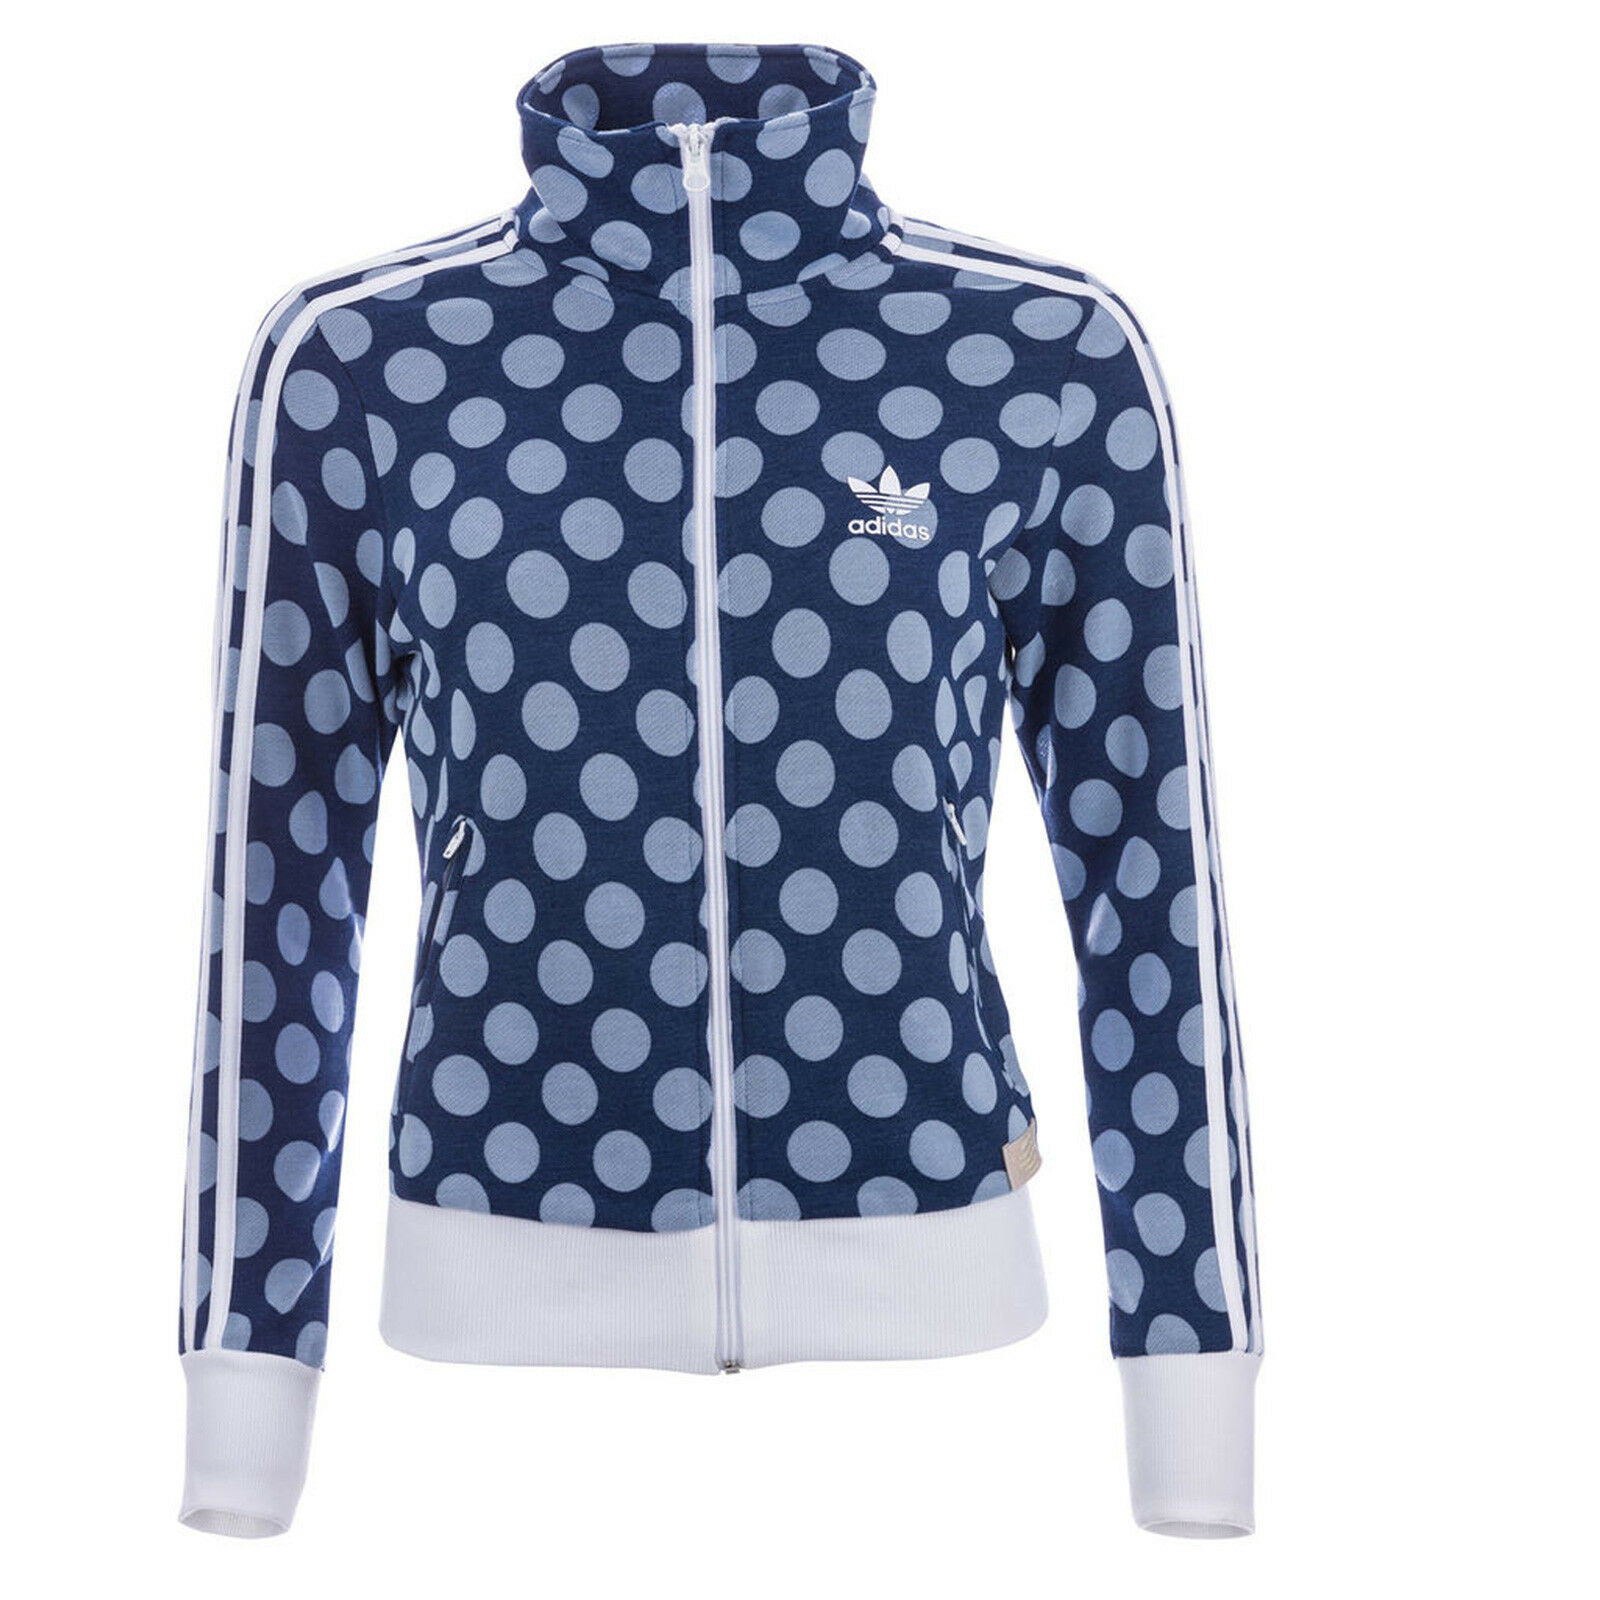 9a2c27b9d970 ADIDAS ORIGINALS FIREBIRD TRACK TOP JACKE DAMEN TRAININGSJACKE BLAU WEISS  PUNKTE